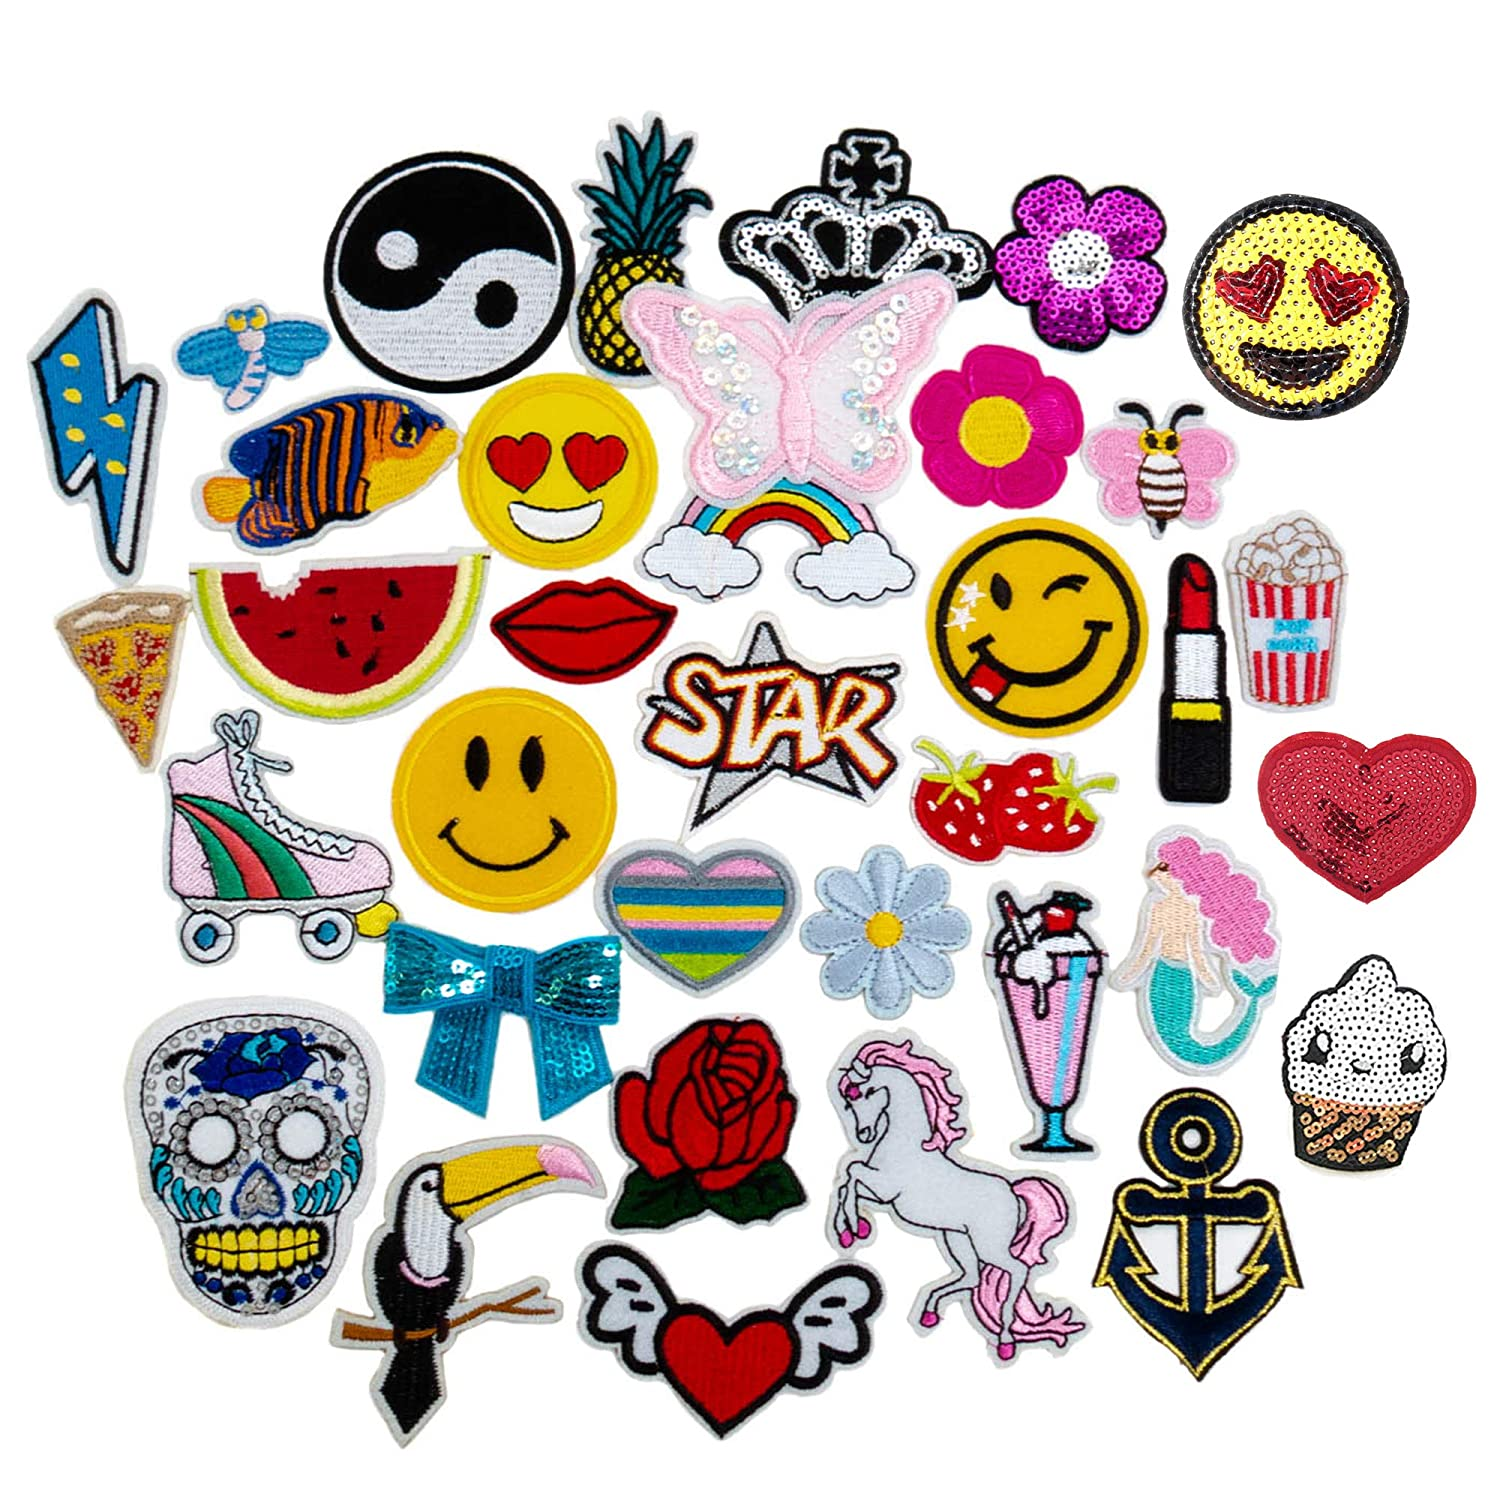 9a65004ba04d 36 PCs Iron On Patches Set - Assorted Designs Embroidered Appliqué Sew On  Patch Set Great for Repairing, Decorating, Reinforcing and Mending Jeans,  ...